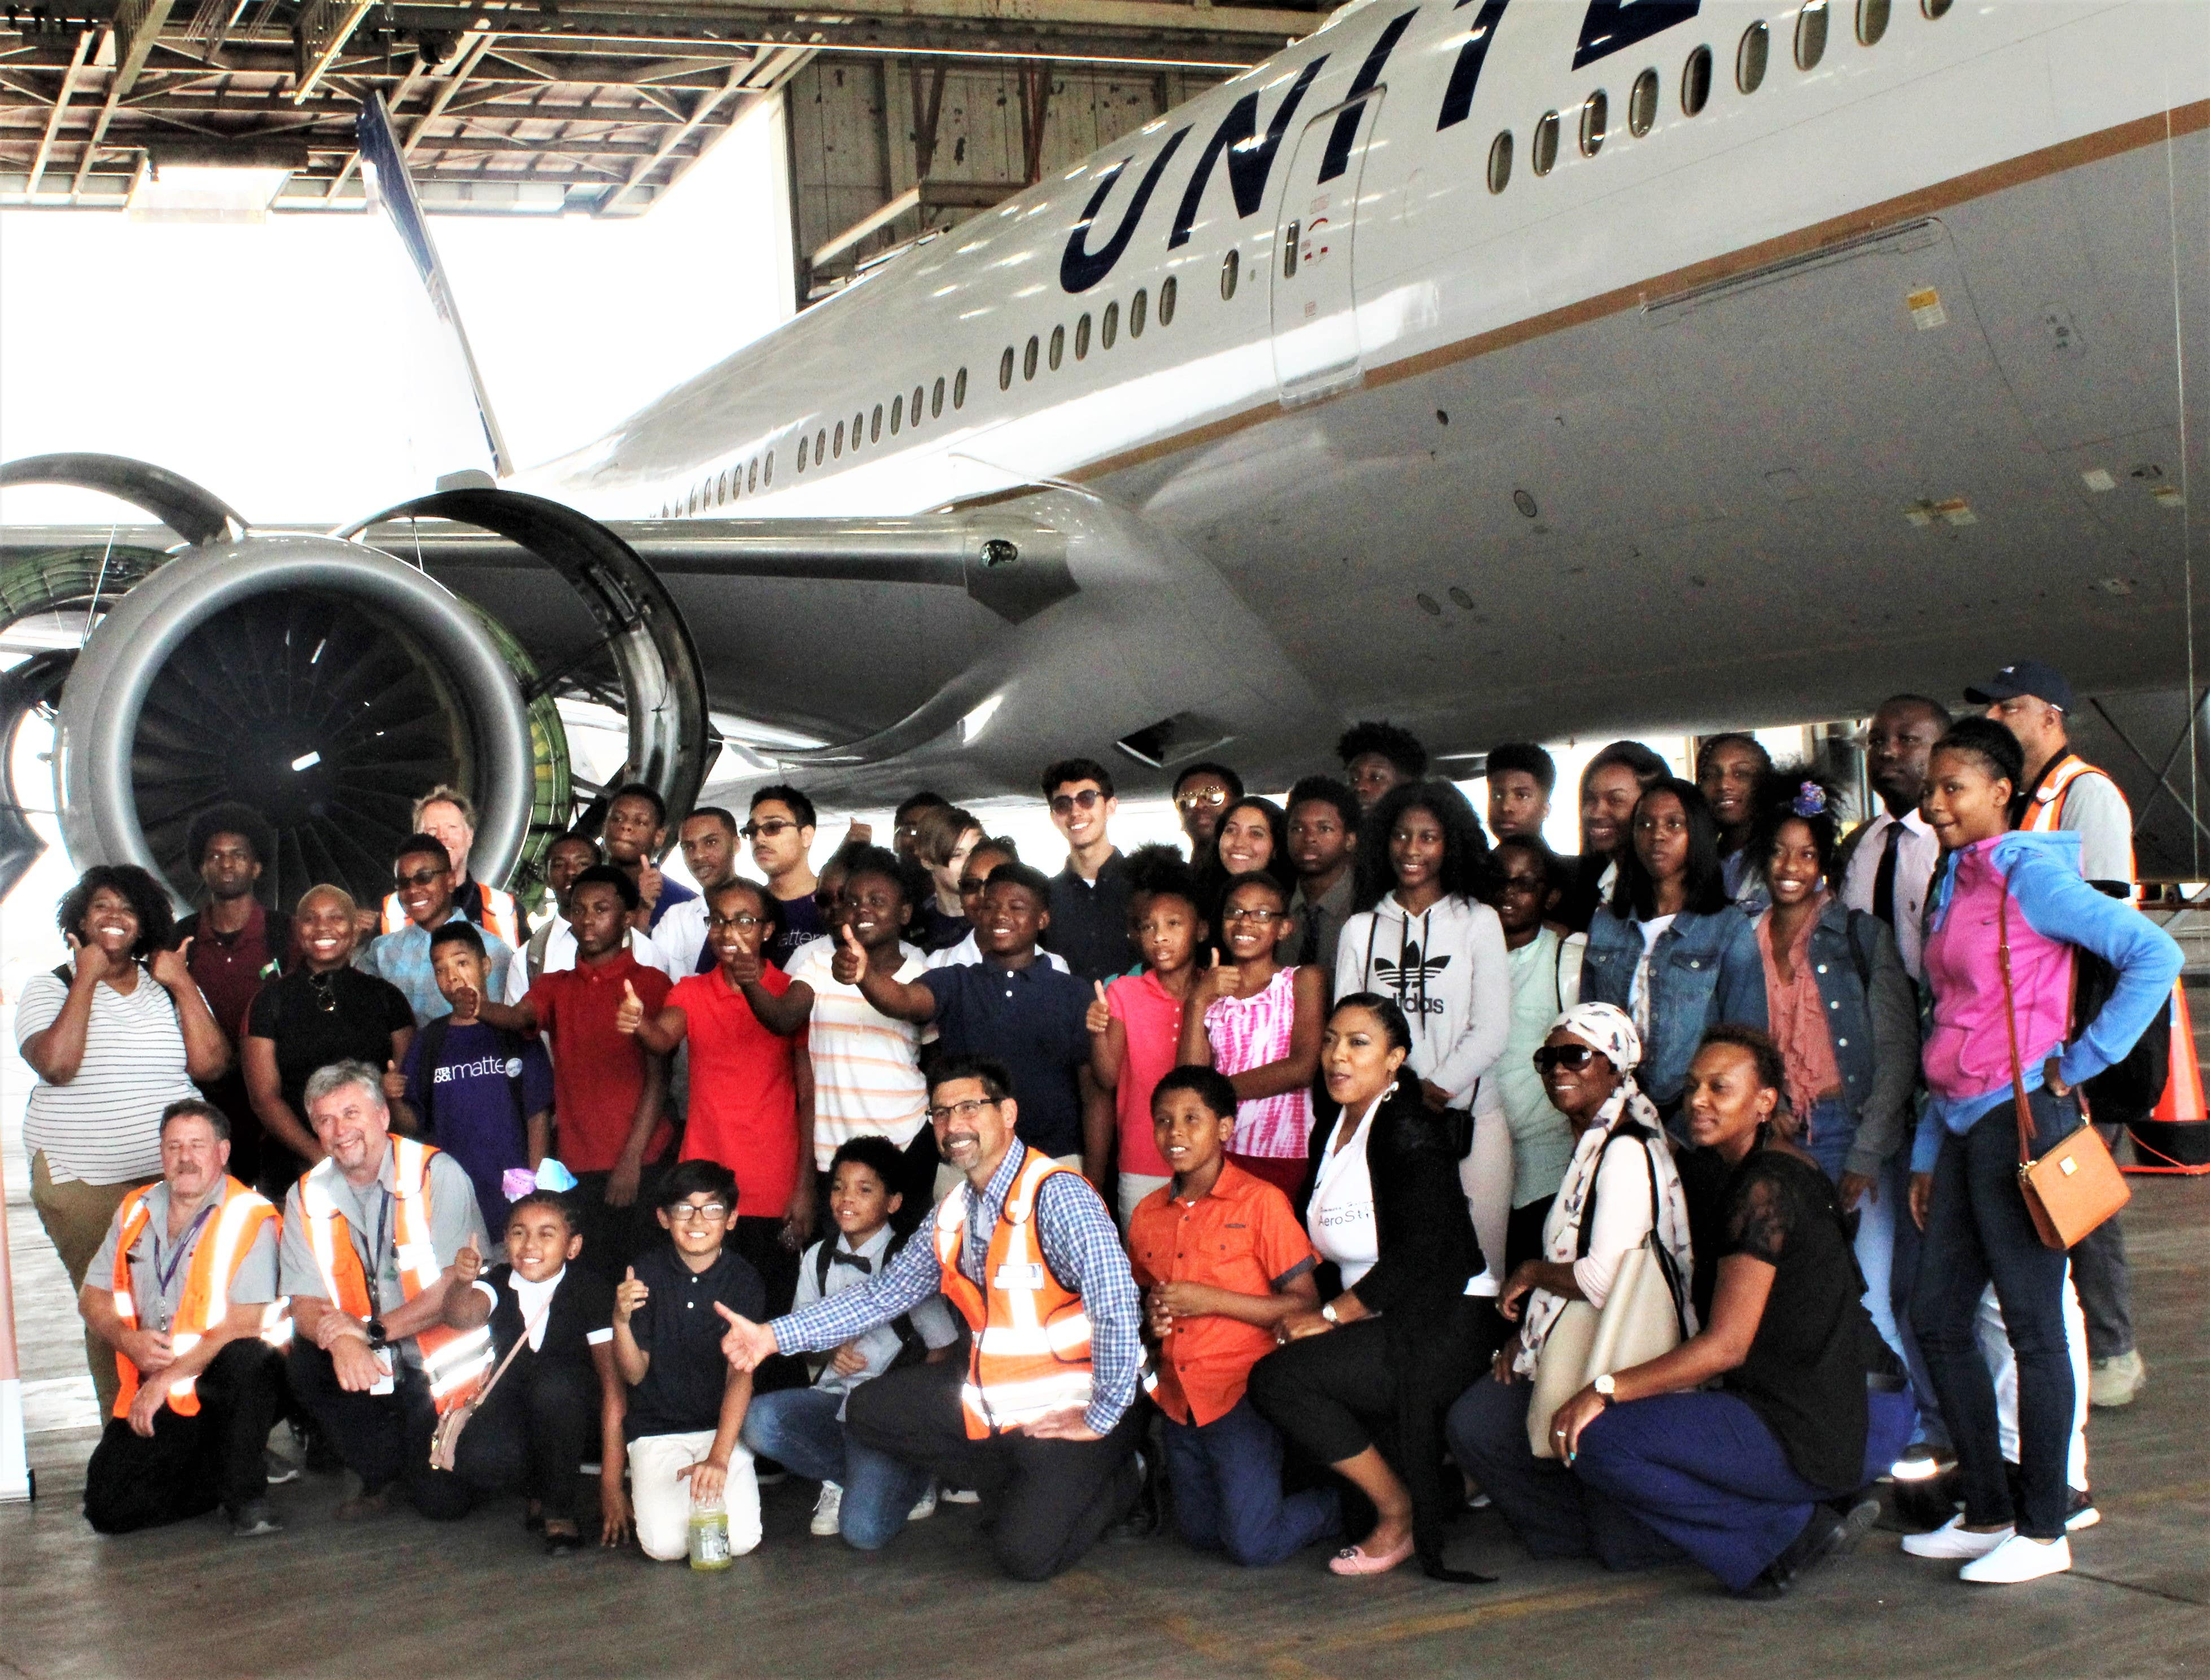 A class of students and teachers smiling in front of a plane